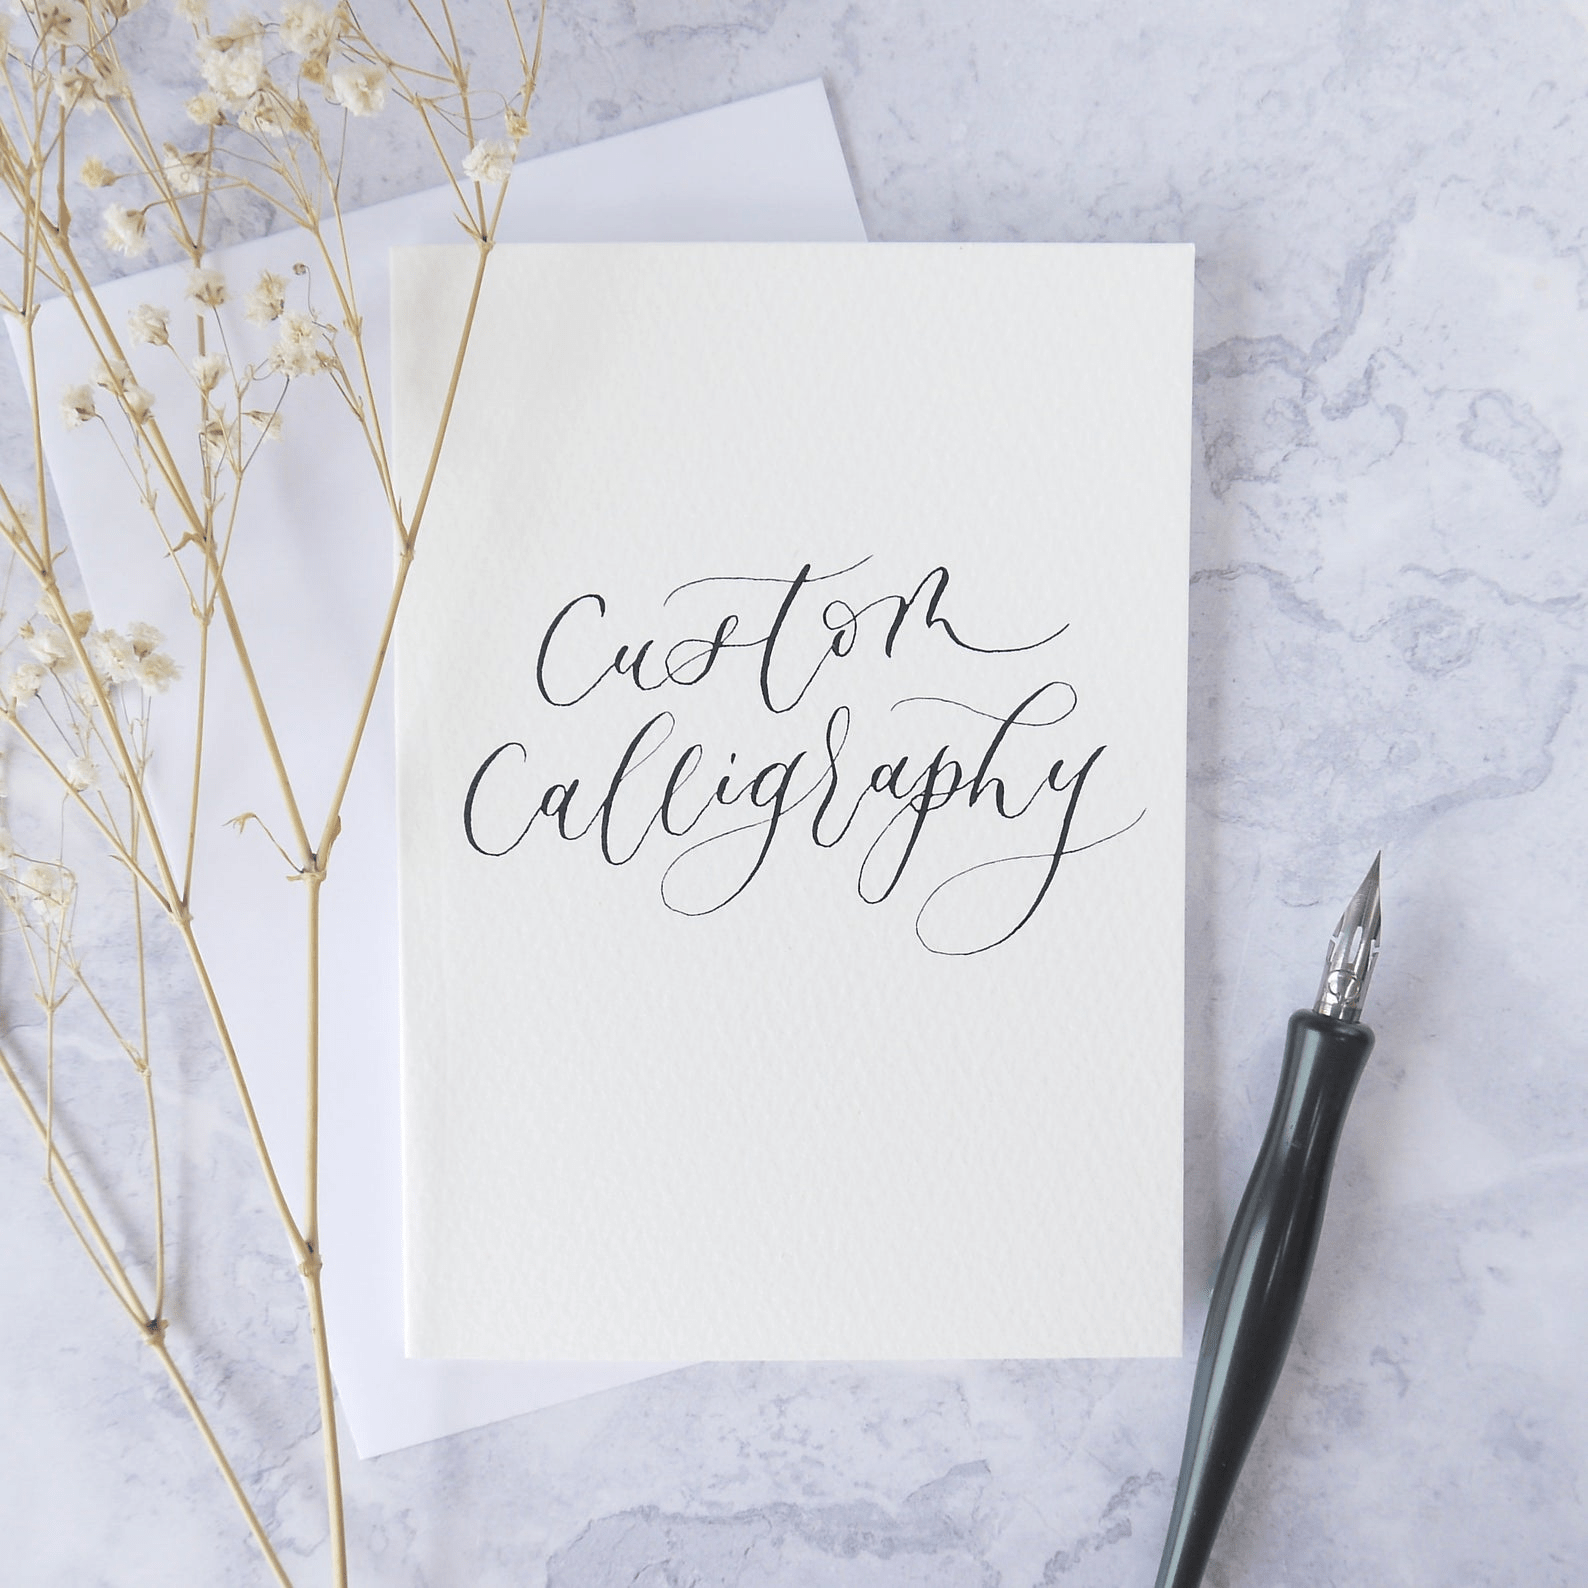 Calligraphy as a side hustle